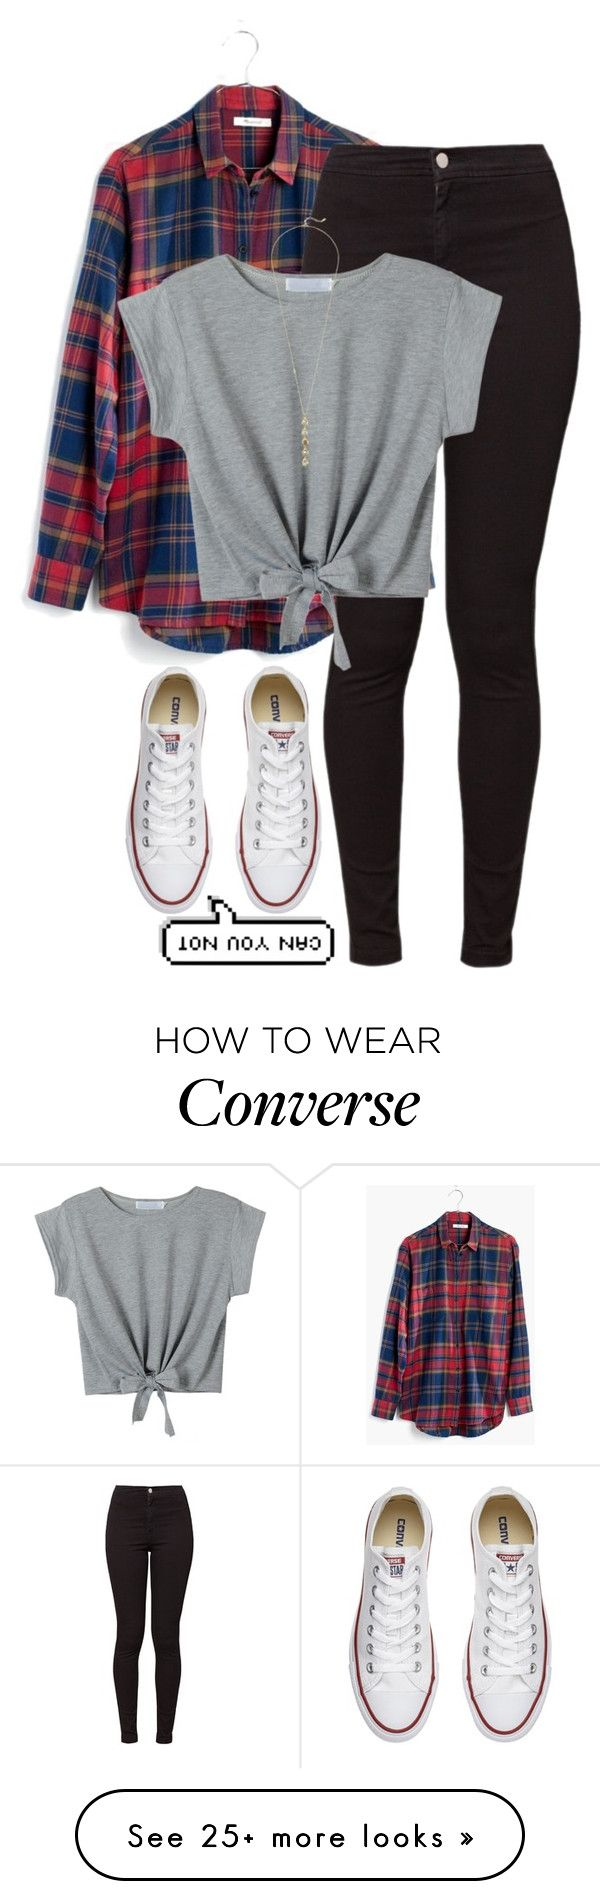 78 ideas about white converse outfits on pinterest